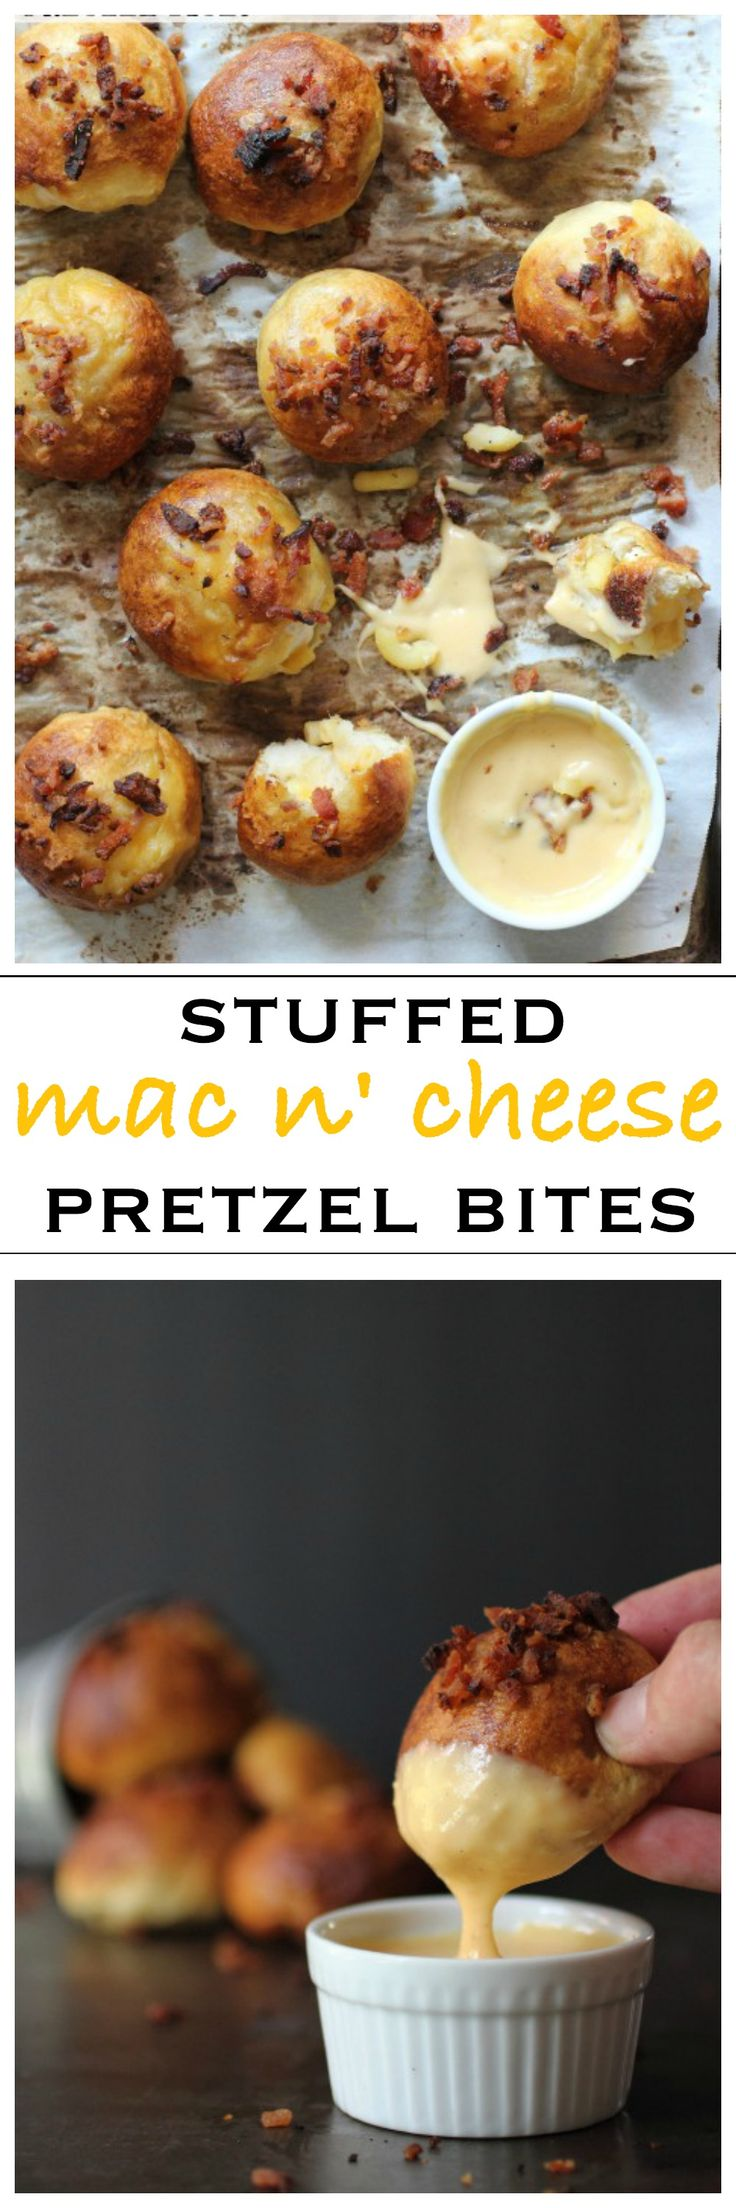 25+ best ideas about Stuffed pretzels on Pinterest ...